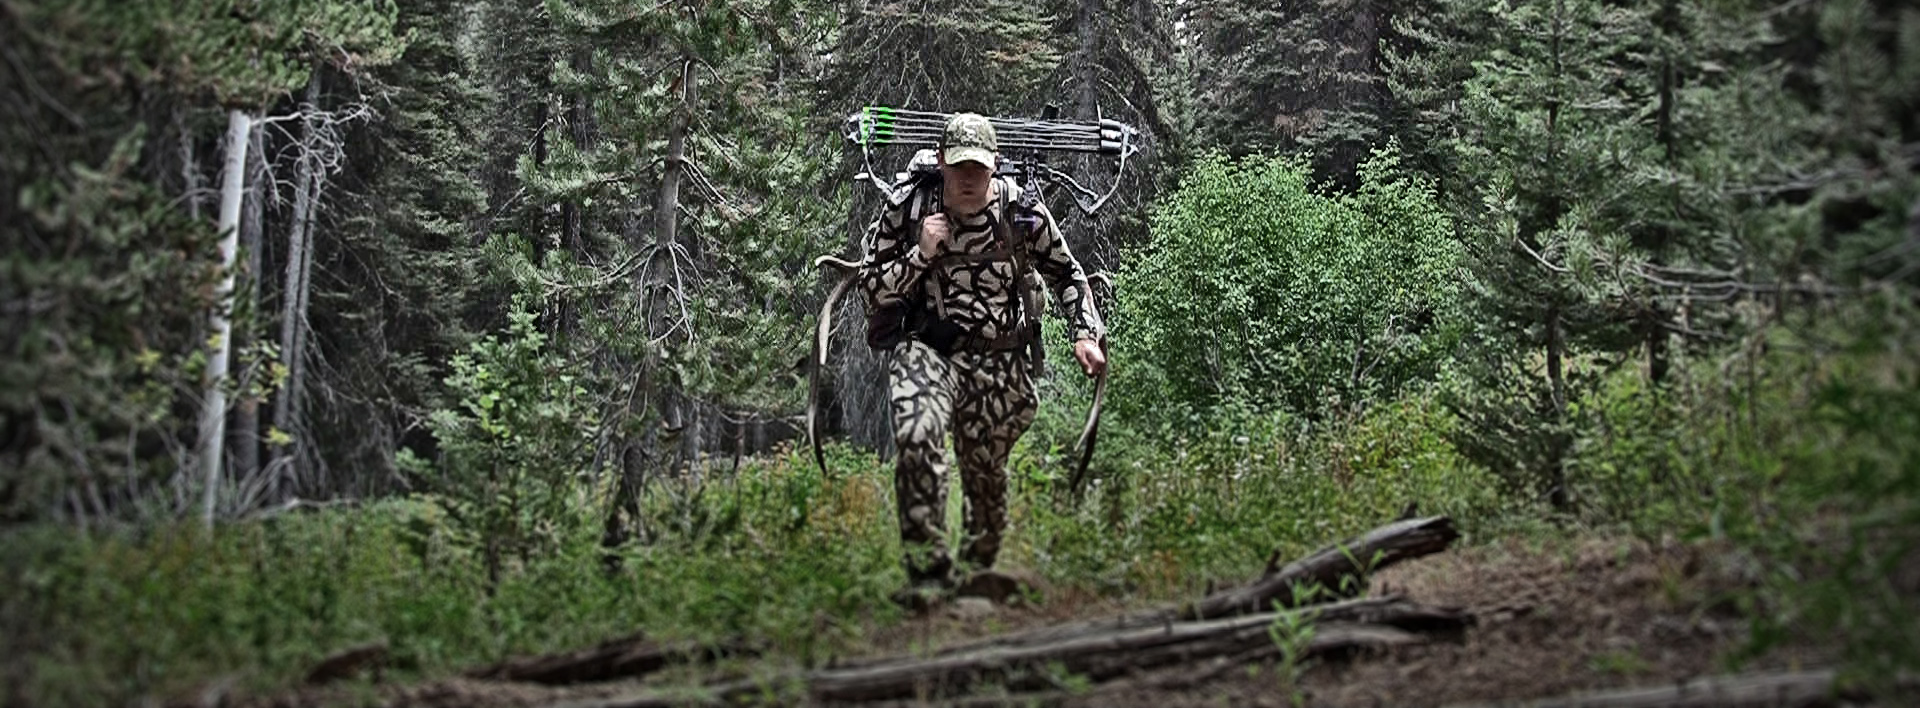 Who What and Why  First Lite Clothing  Linton Outdoors Blog